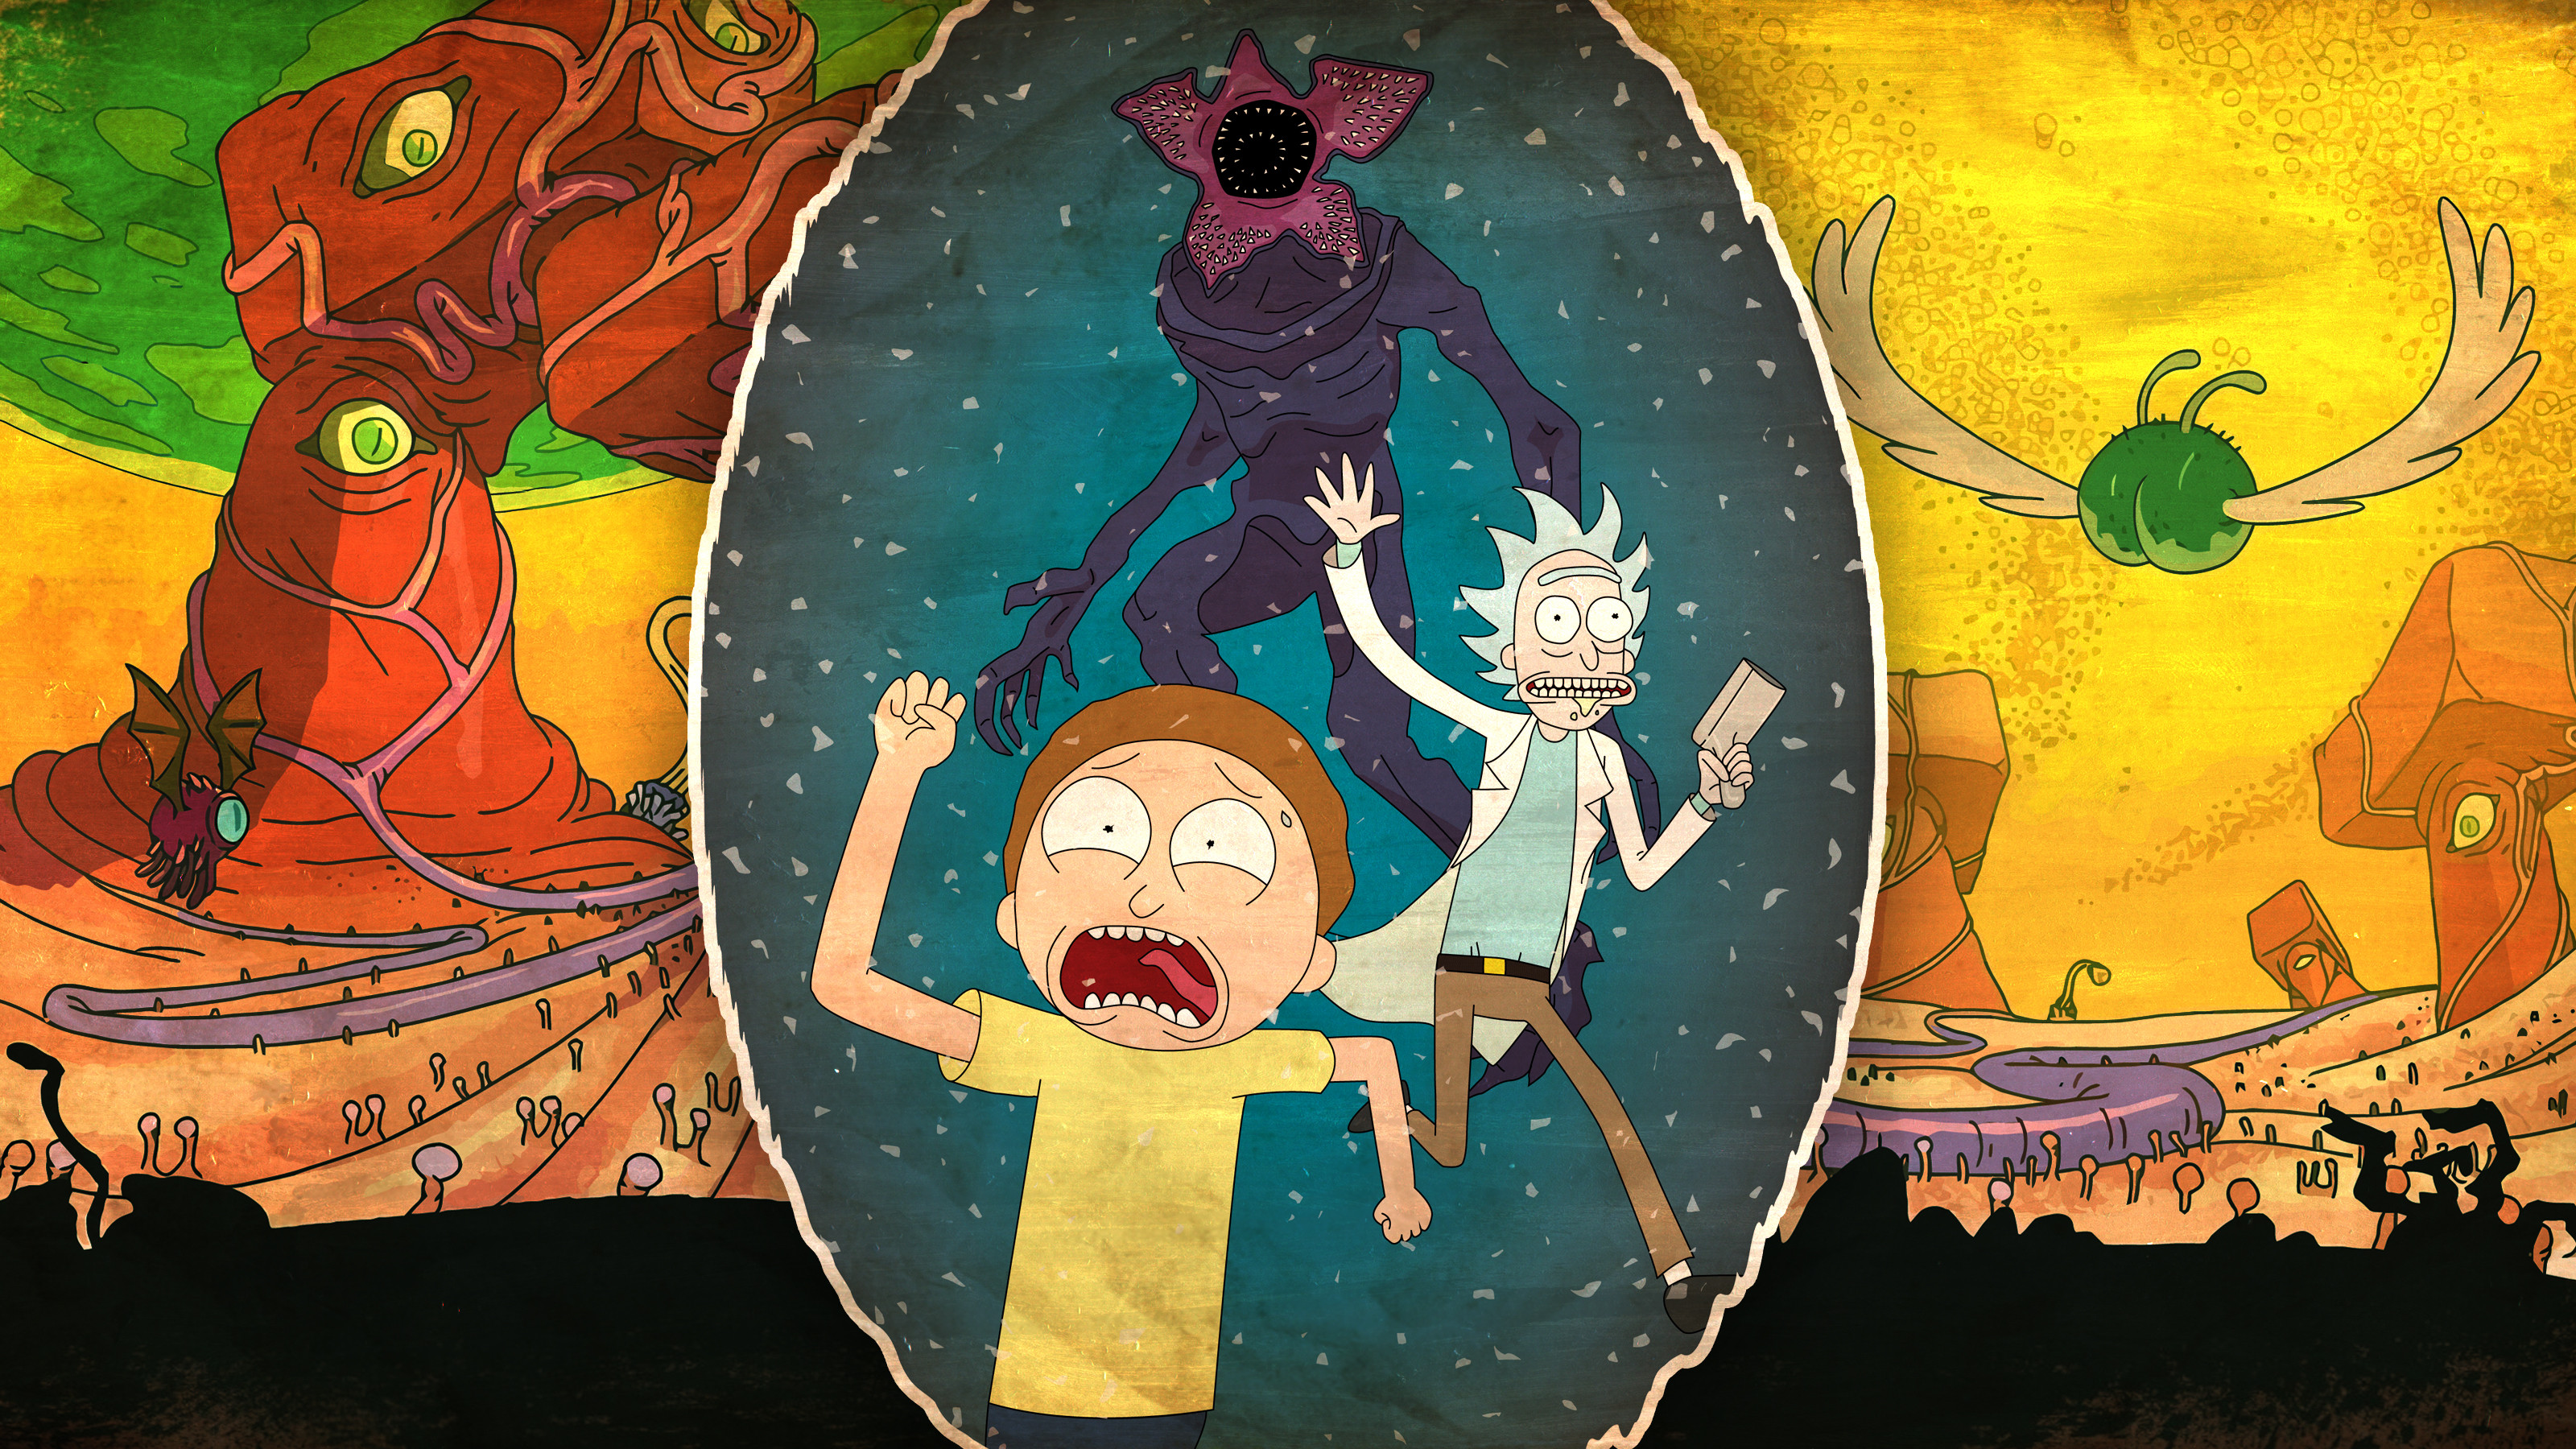 Rick and Morty HD Wallpaper Background Image 3200x1800 ID 3200x1800